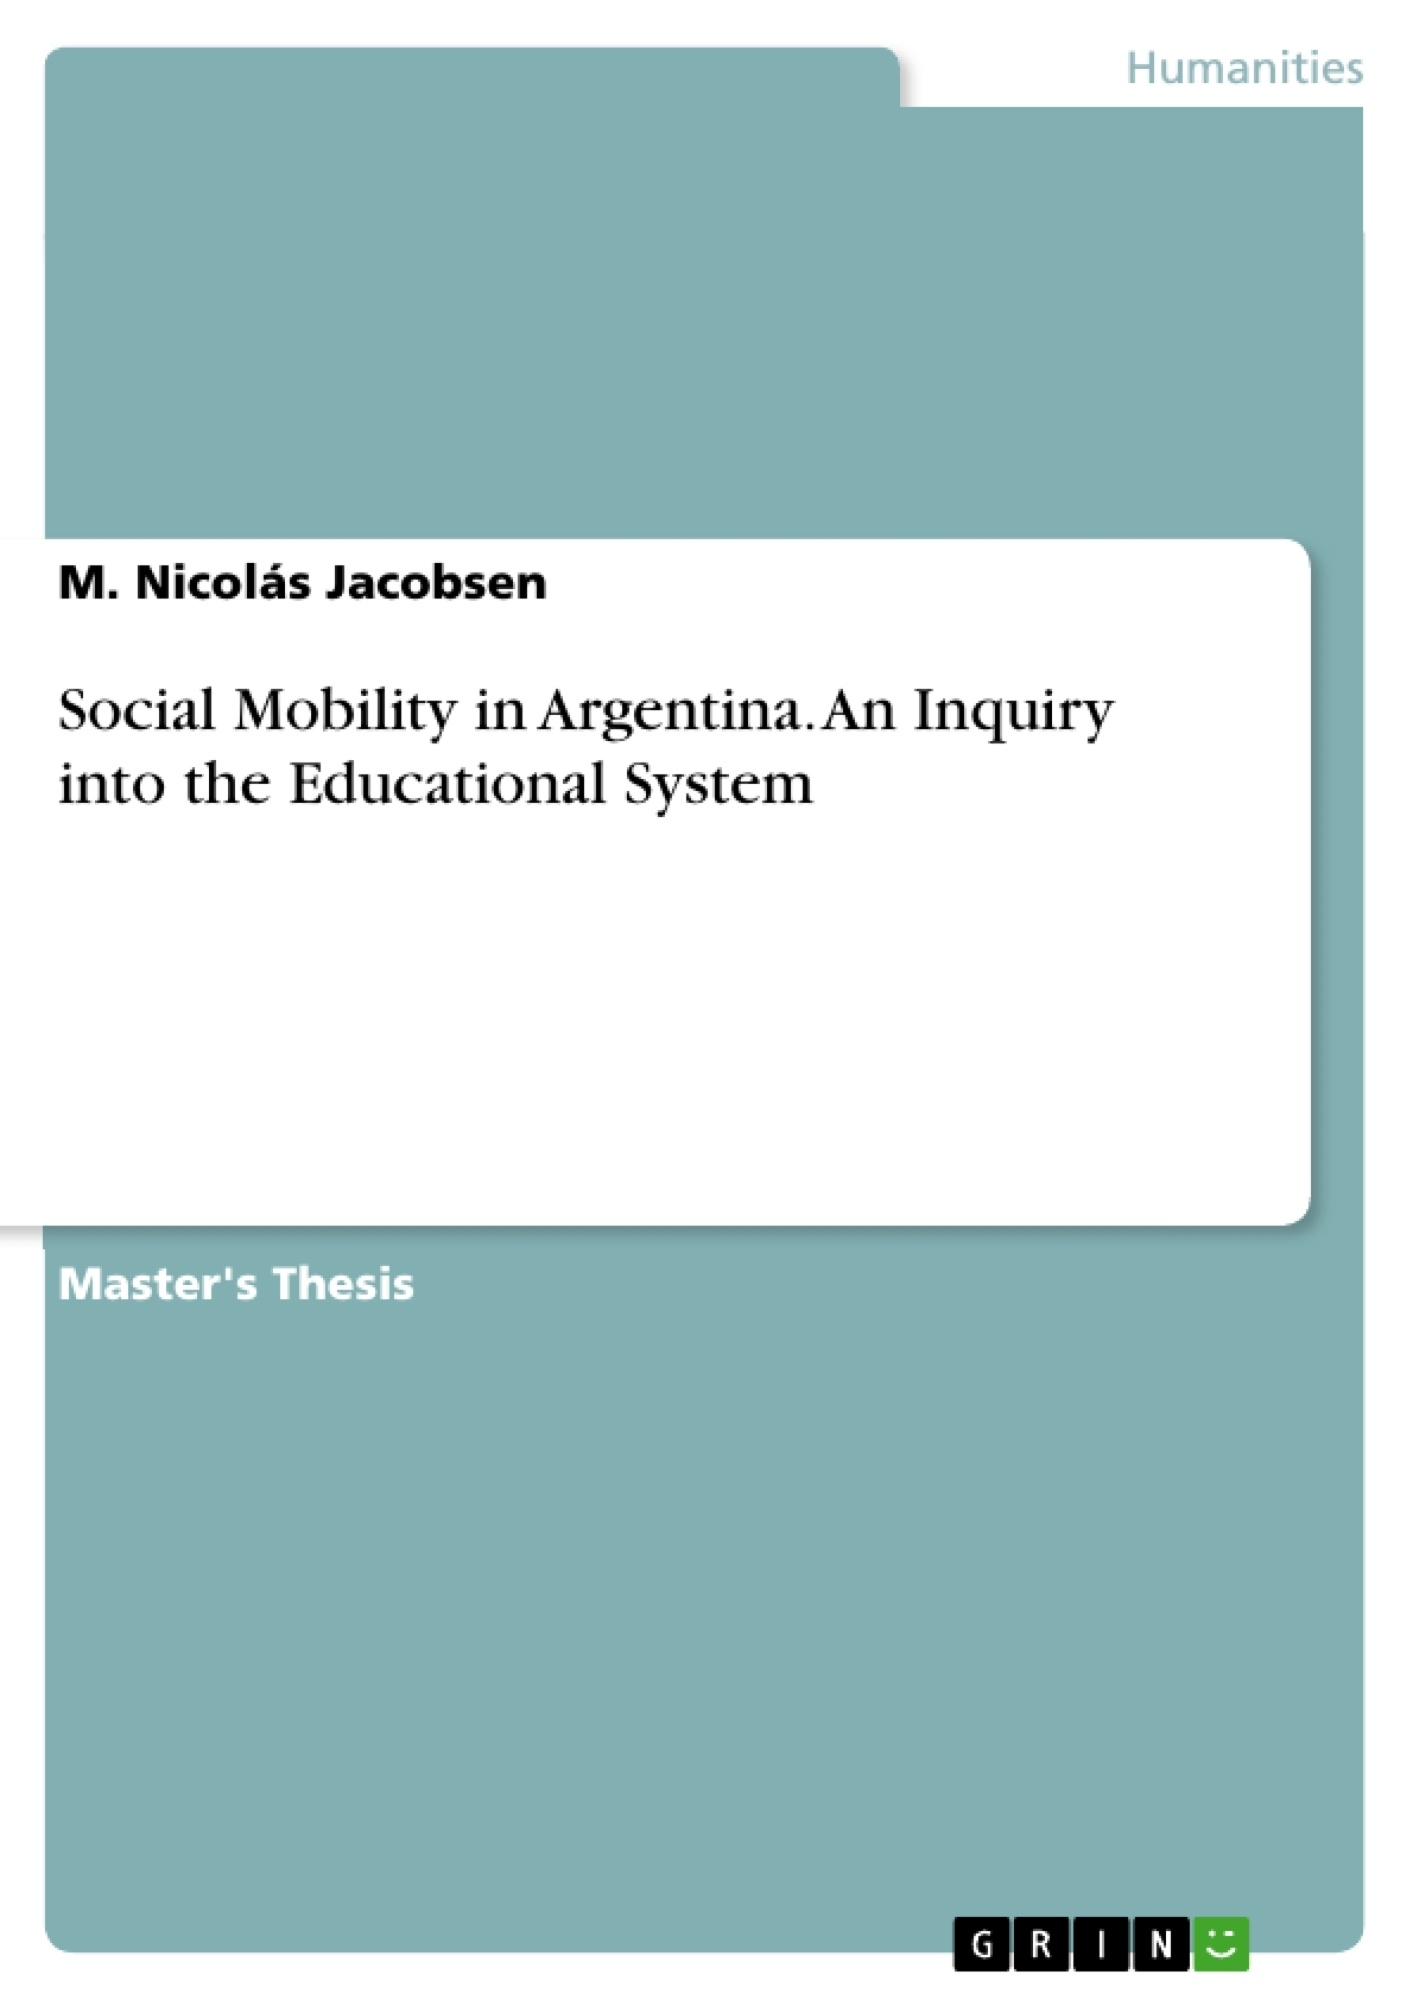 Title: Social Mobility in Argentina. An Inquiry into the Educational System